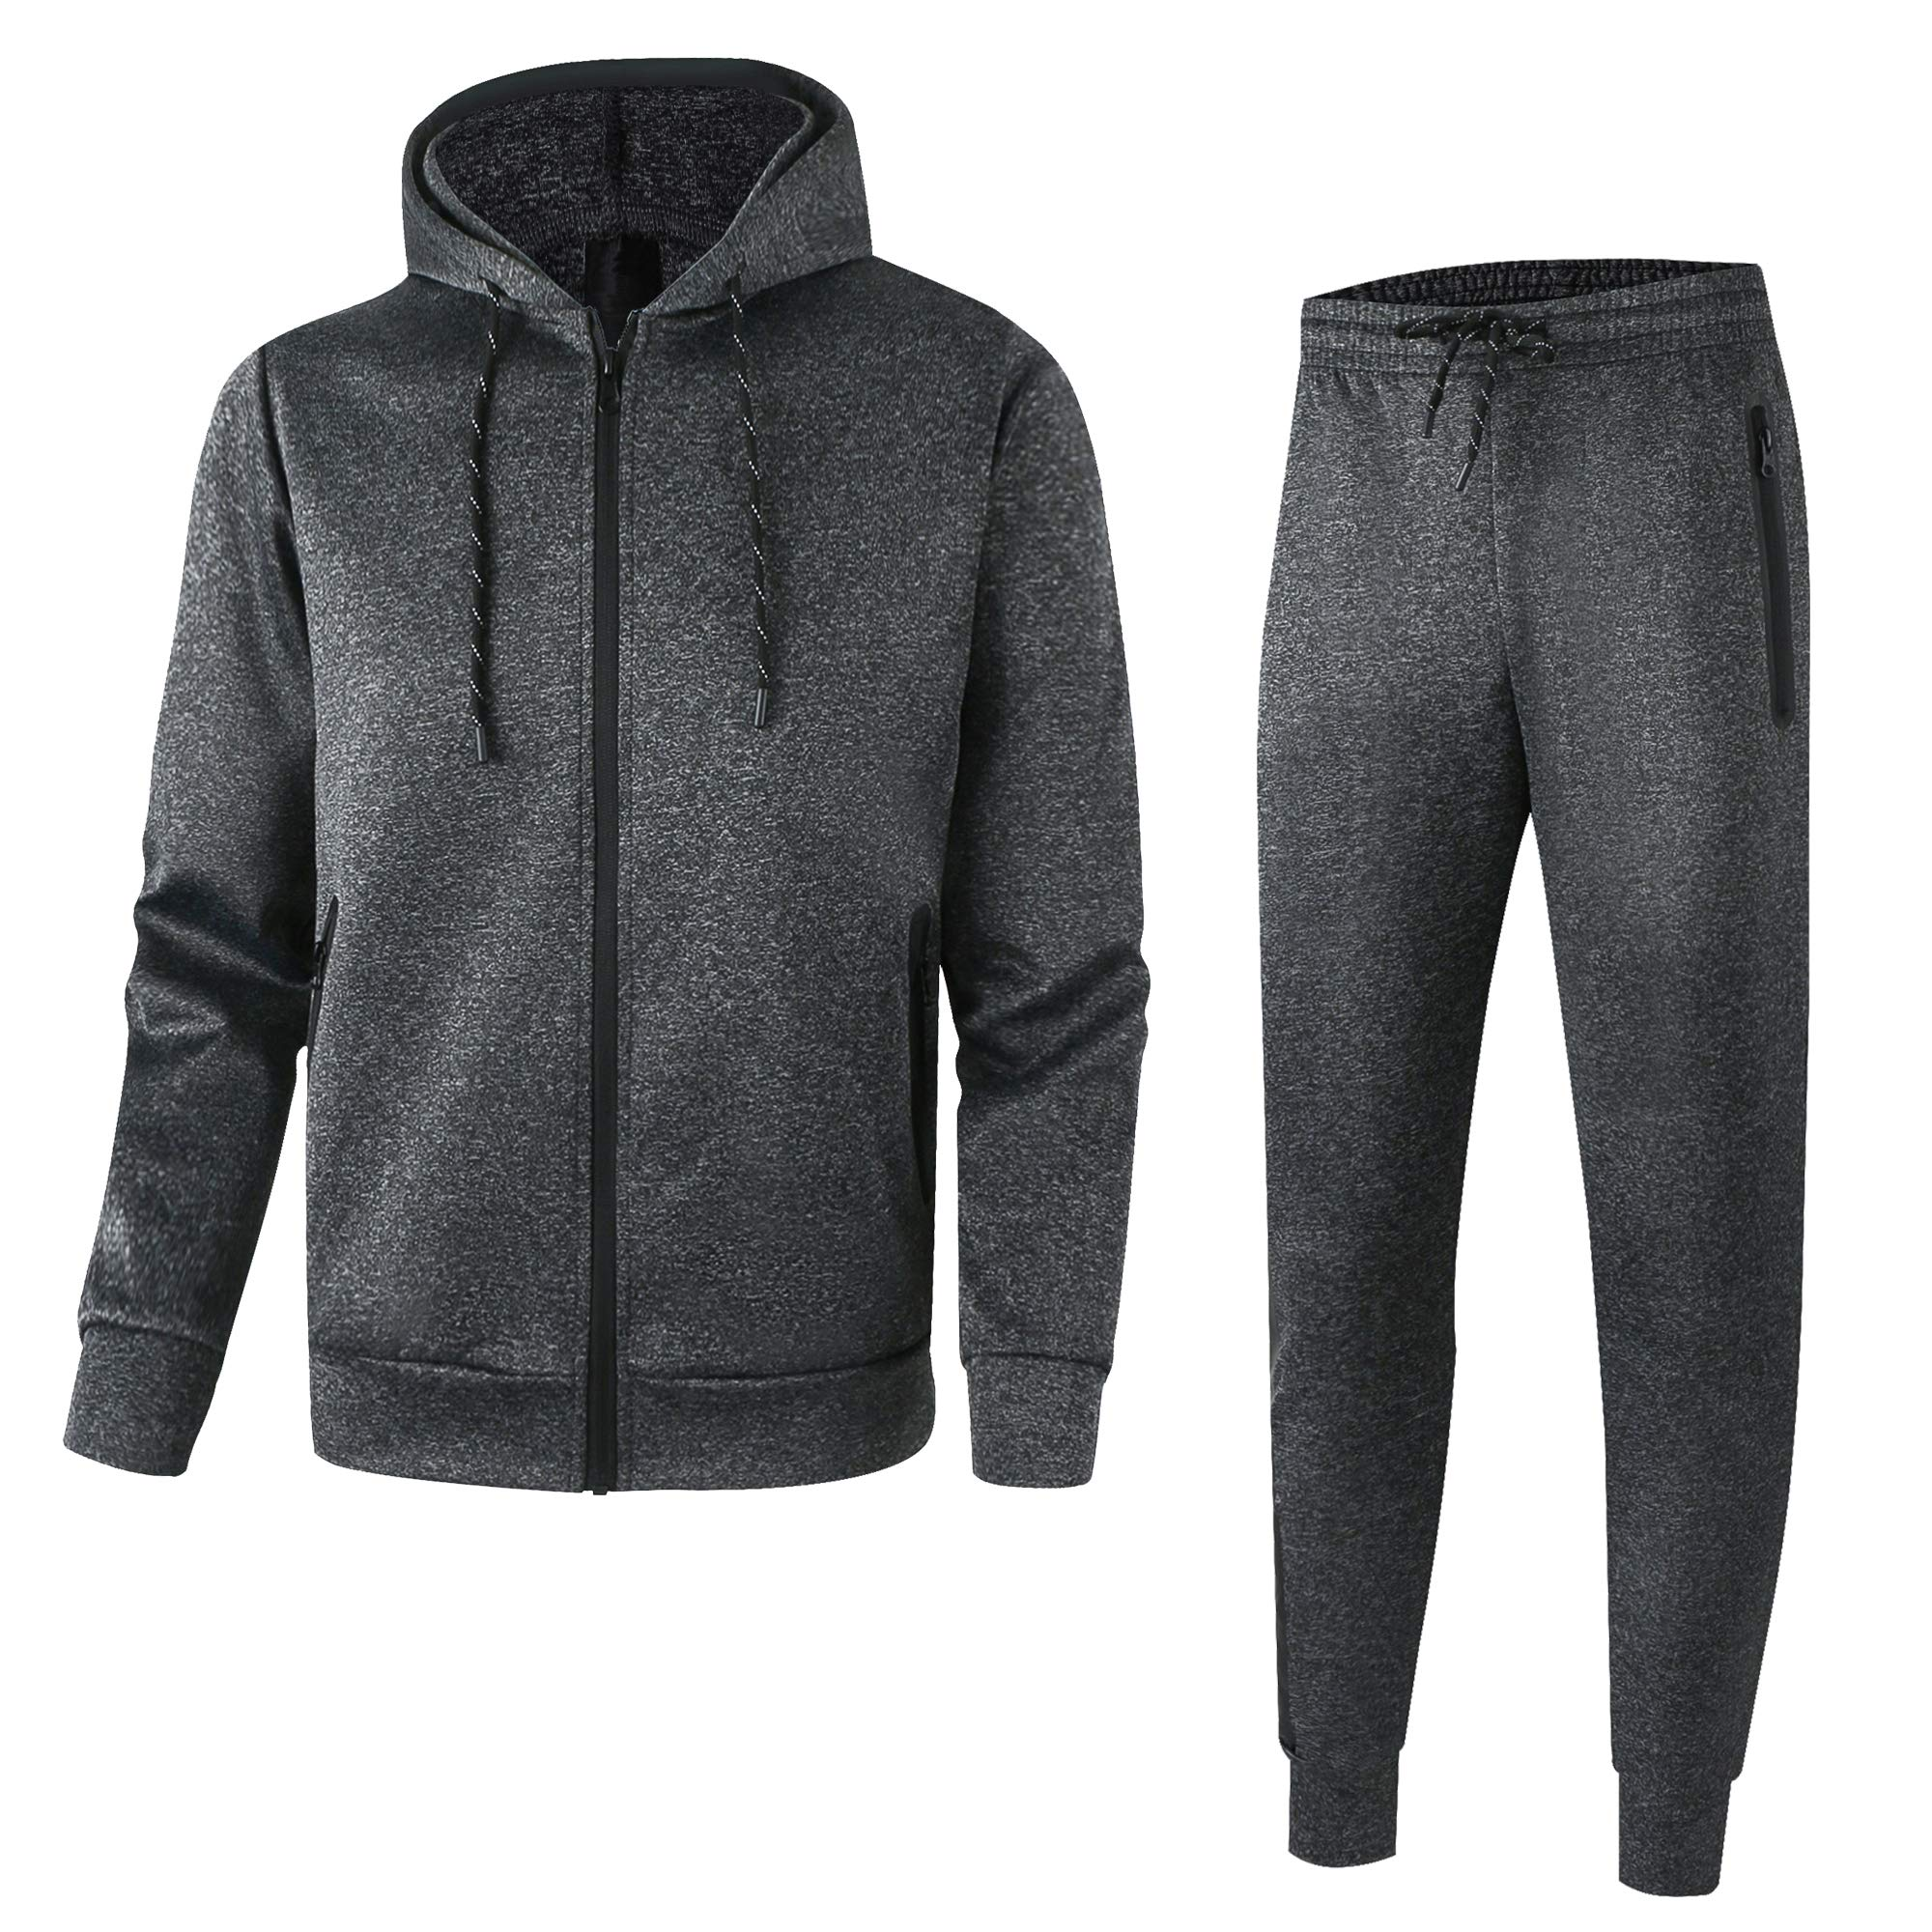 Men's Athletic Casual Tracksuit Pants Full Zip Hooded Jacket Sweatsuit Set for Men(2XL,D-Grey) by URBEX